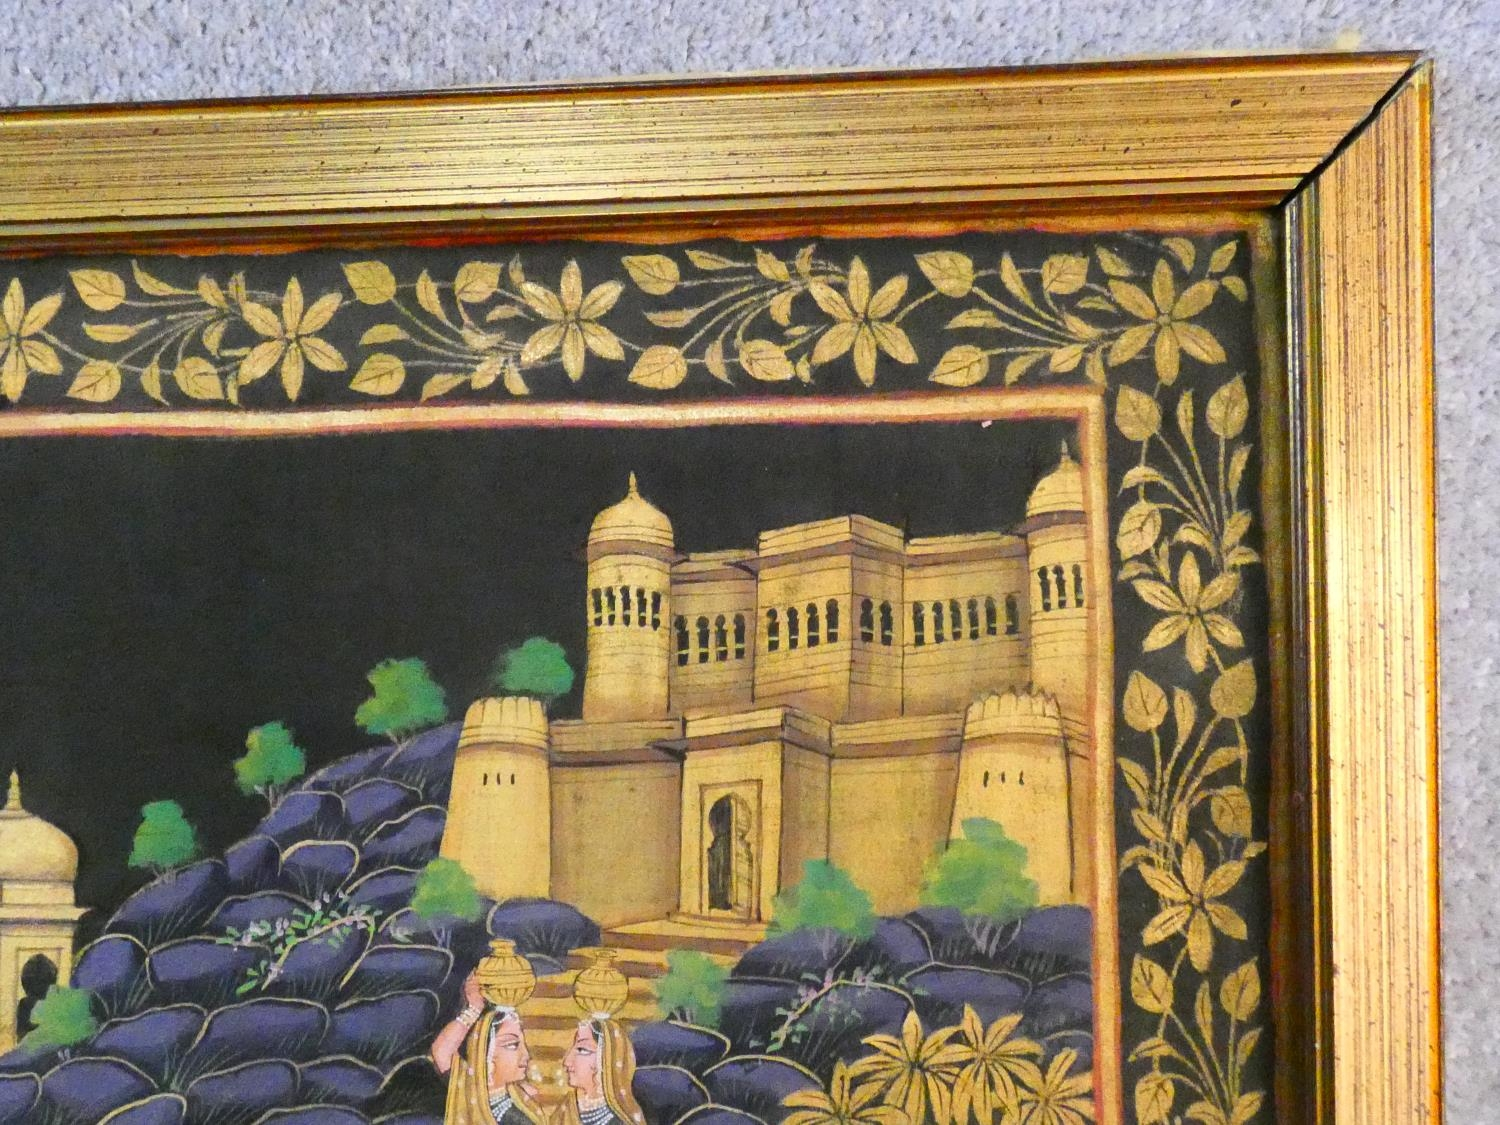 A large framed Indo-Persian gilded silk painting of Krishna with females surrounding him, standing - Image 4 of 8